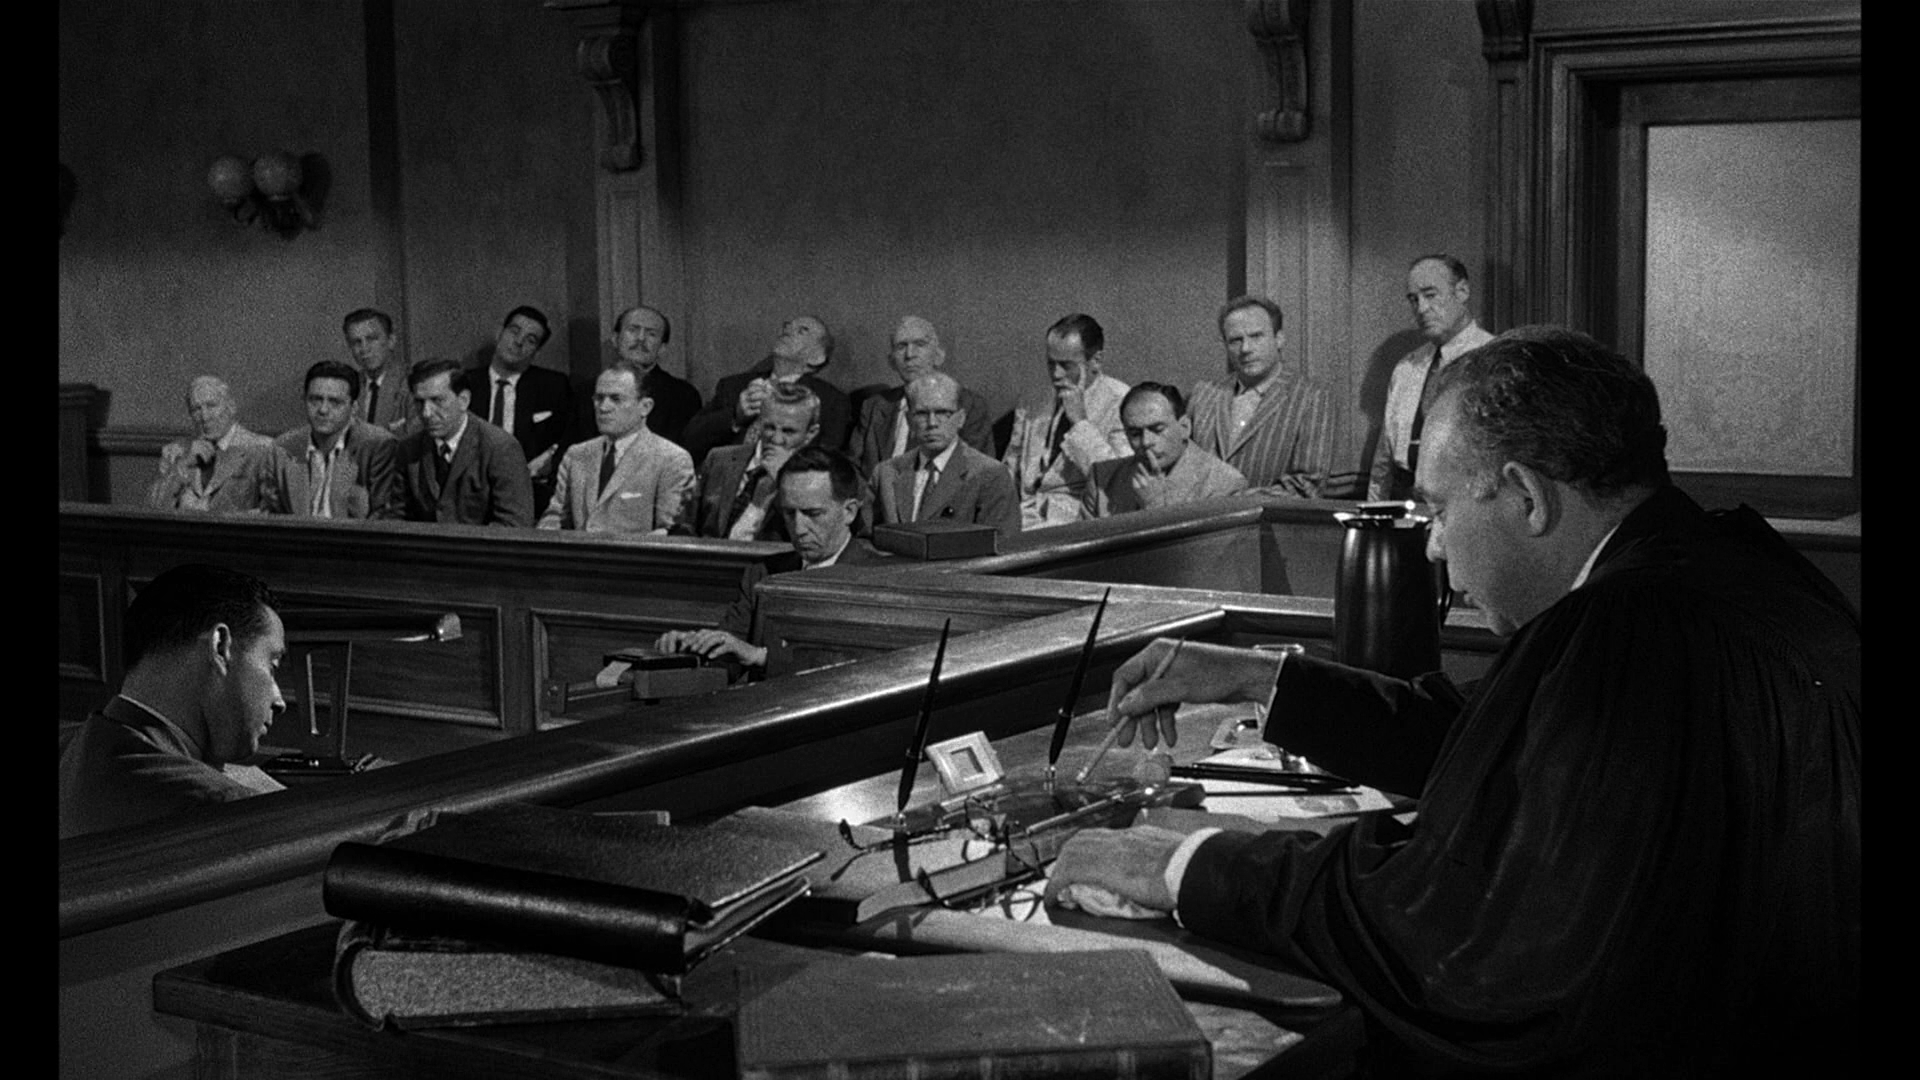 12 Angry Men Jurors